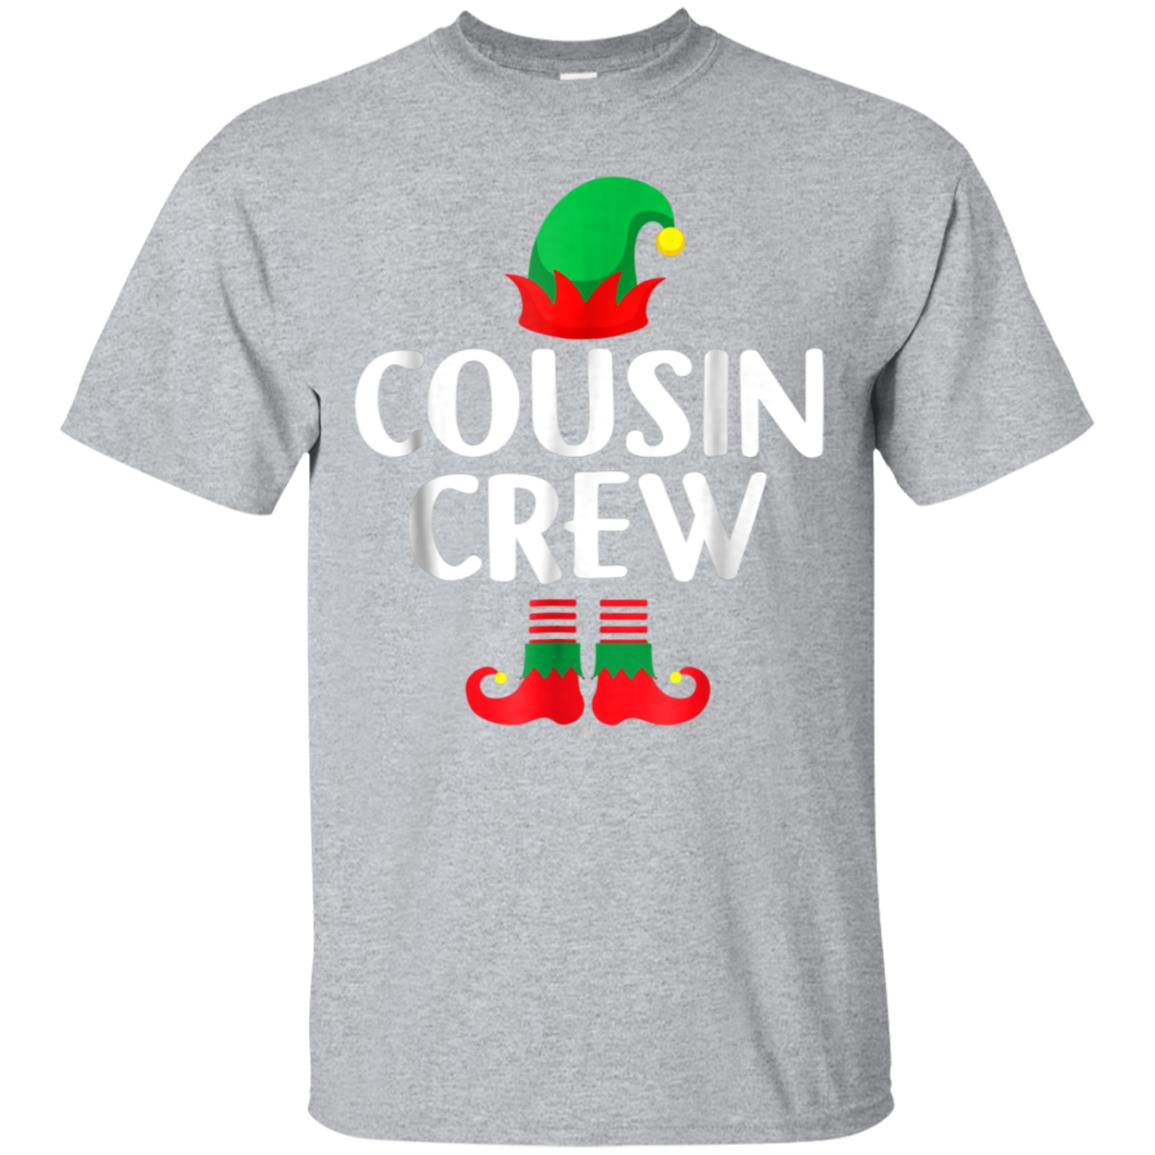 Cousin Crew - Elf Shirt - Family Matching Christmas Pajamas 99promocode